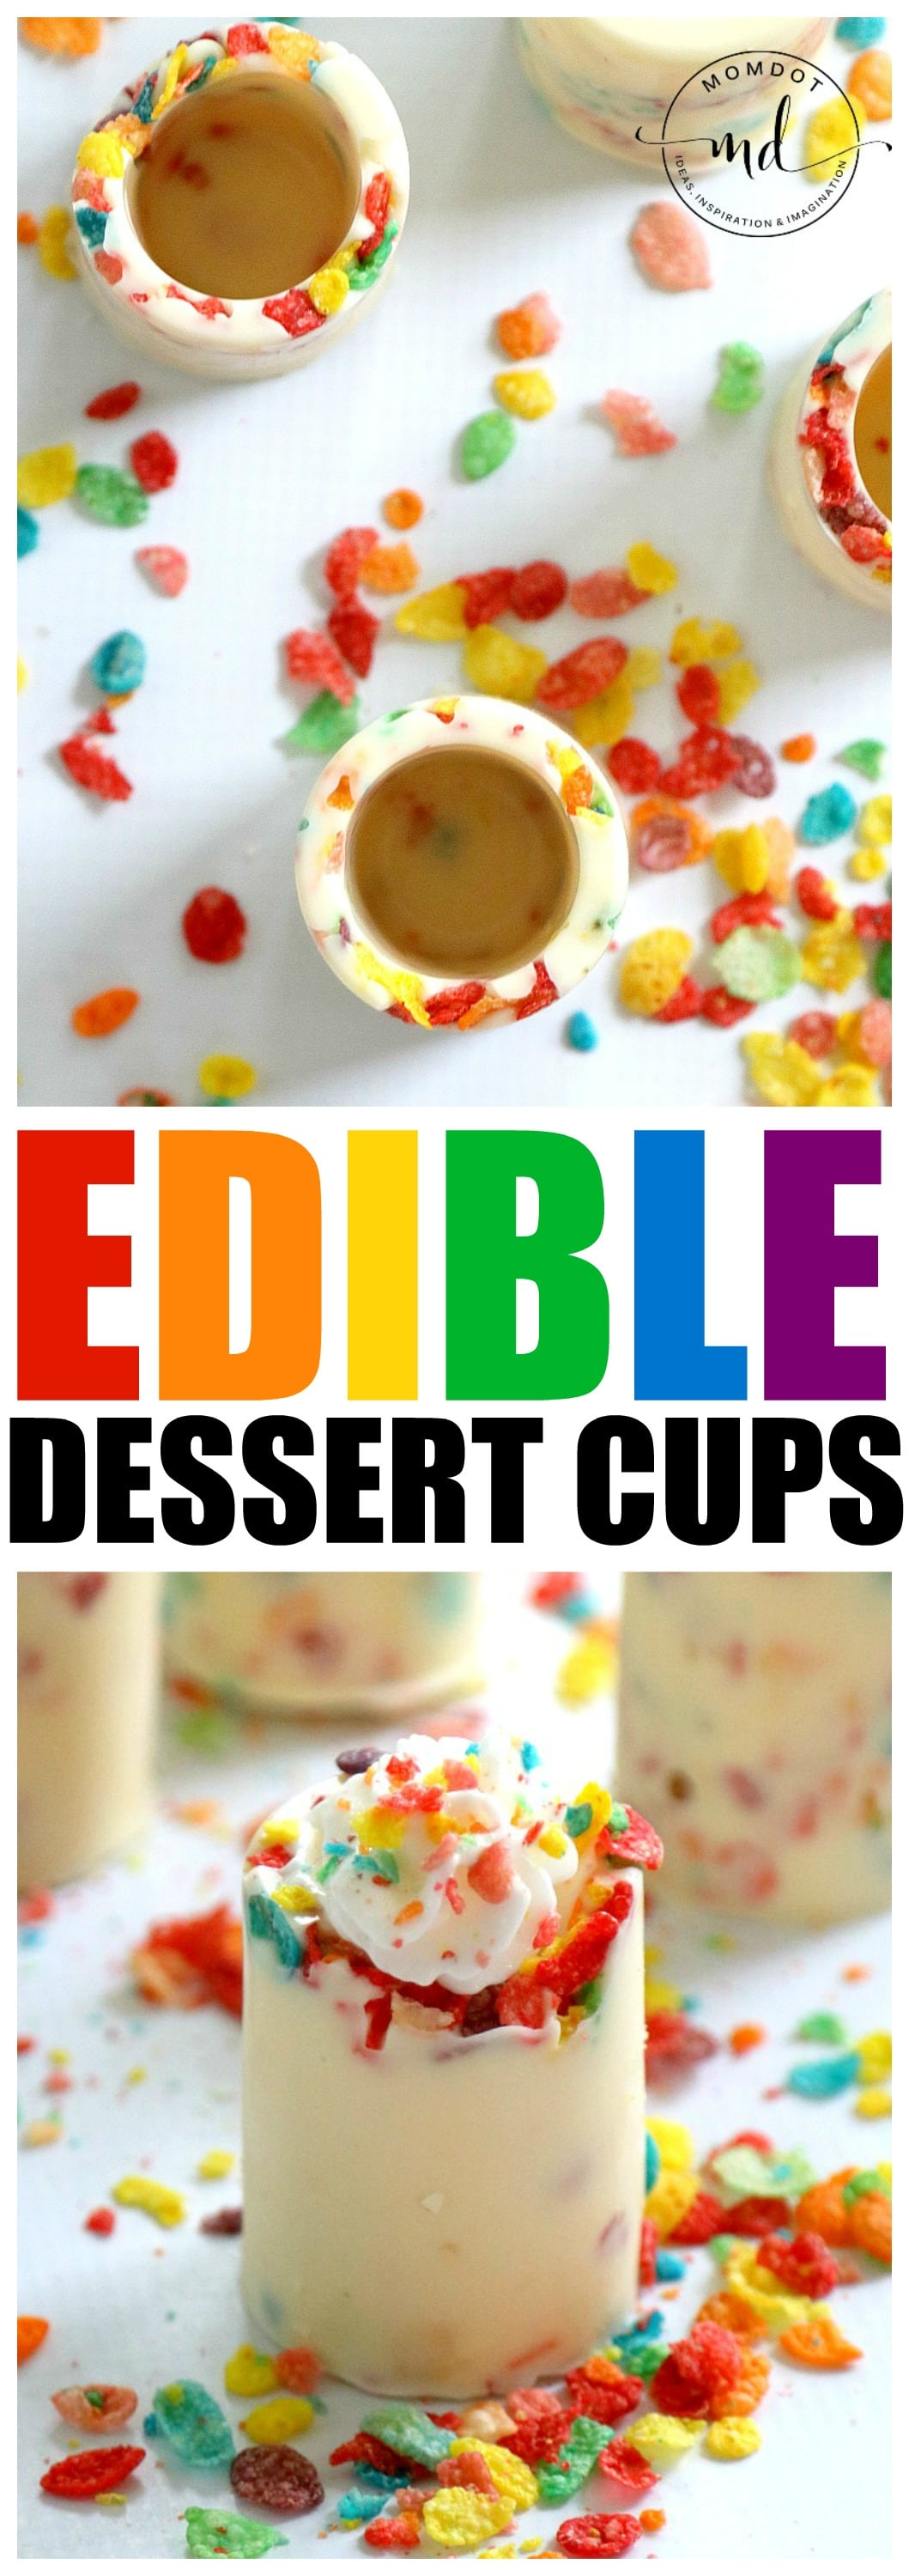 How to make Edible Dessert Cups perfect to fill for mousse, whipped cream, pudding, and cereal, Step by step with exact mold used